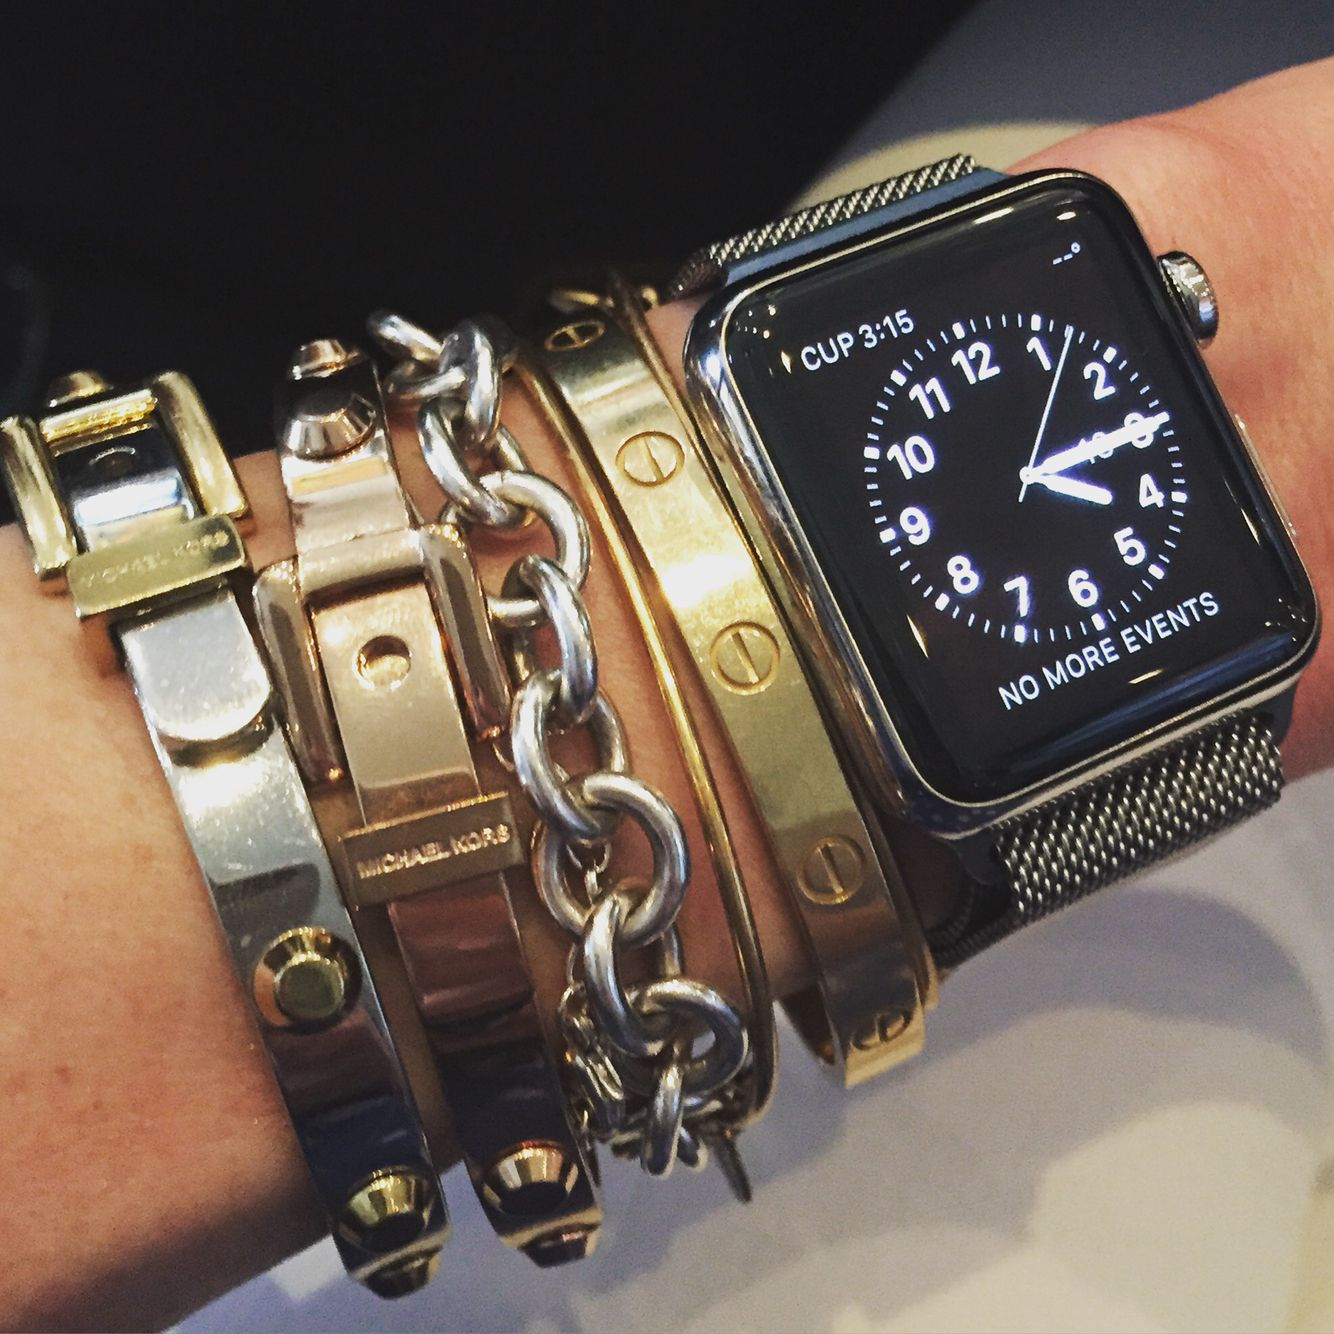 92982e3cbaf How to style an Apple watch - stack with Cartier, Alex + Ani, Tiffany & Co.  and Michael Kors bracelets - arm party!